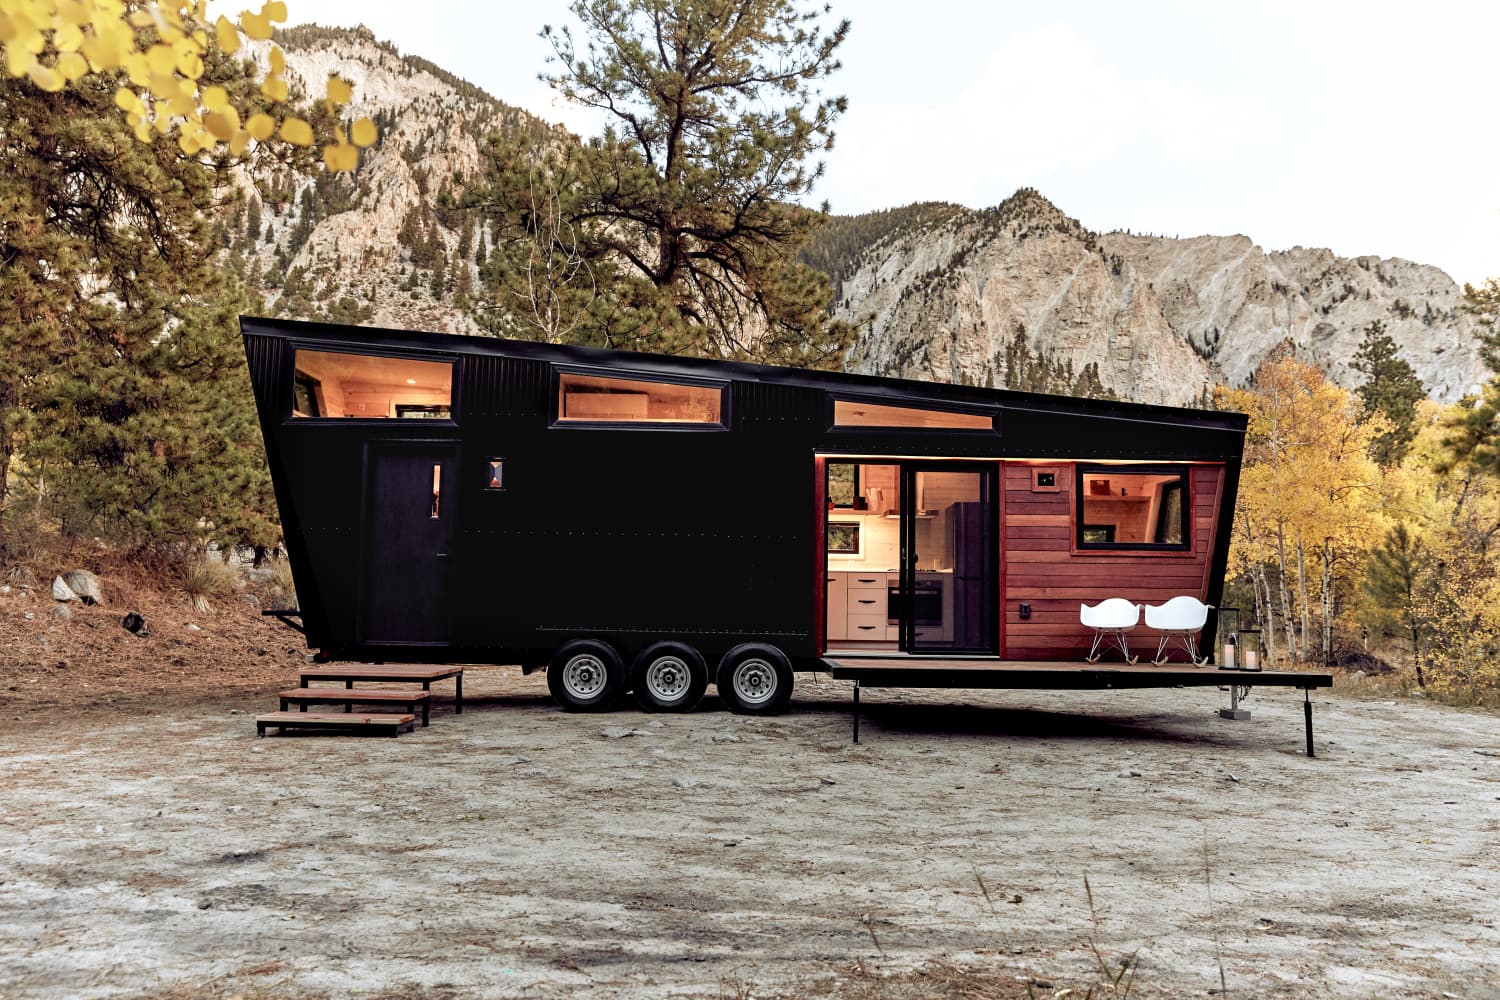 This 300-Square-Foot RV Is a Sleek, All-Black Abode